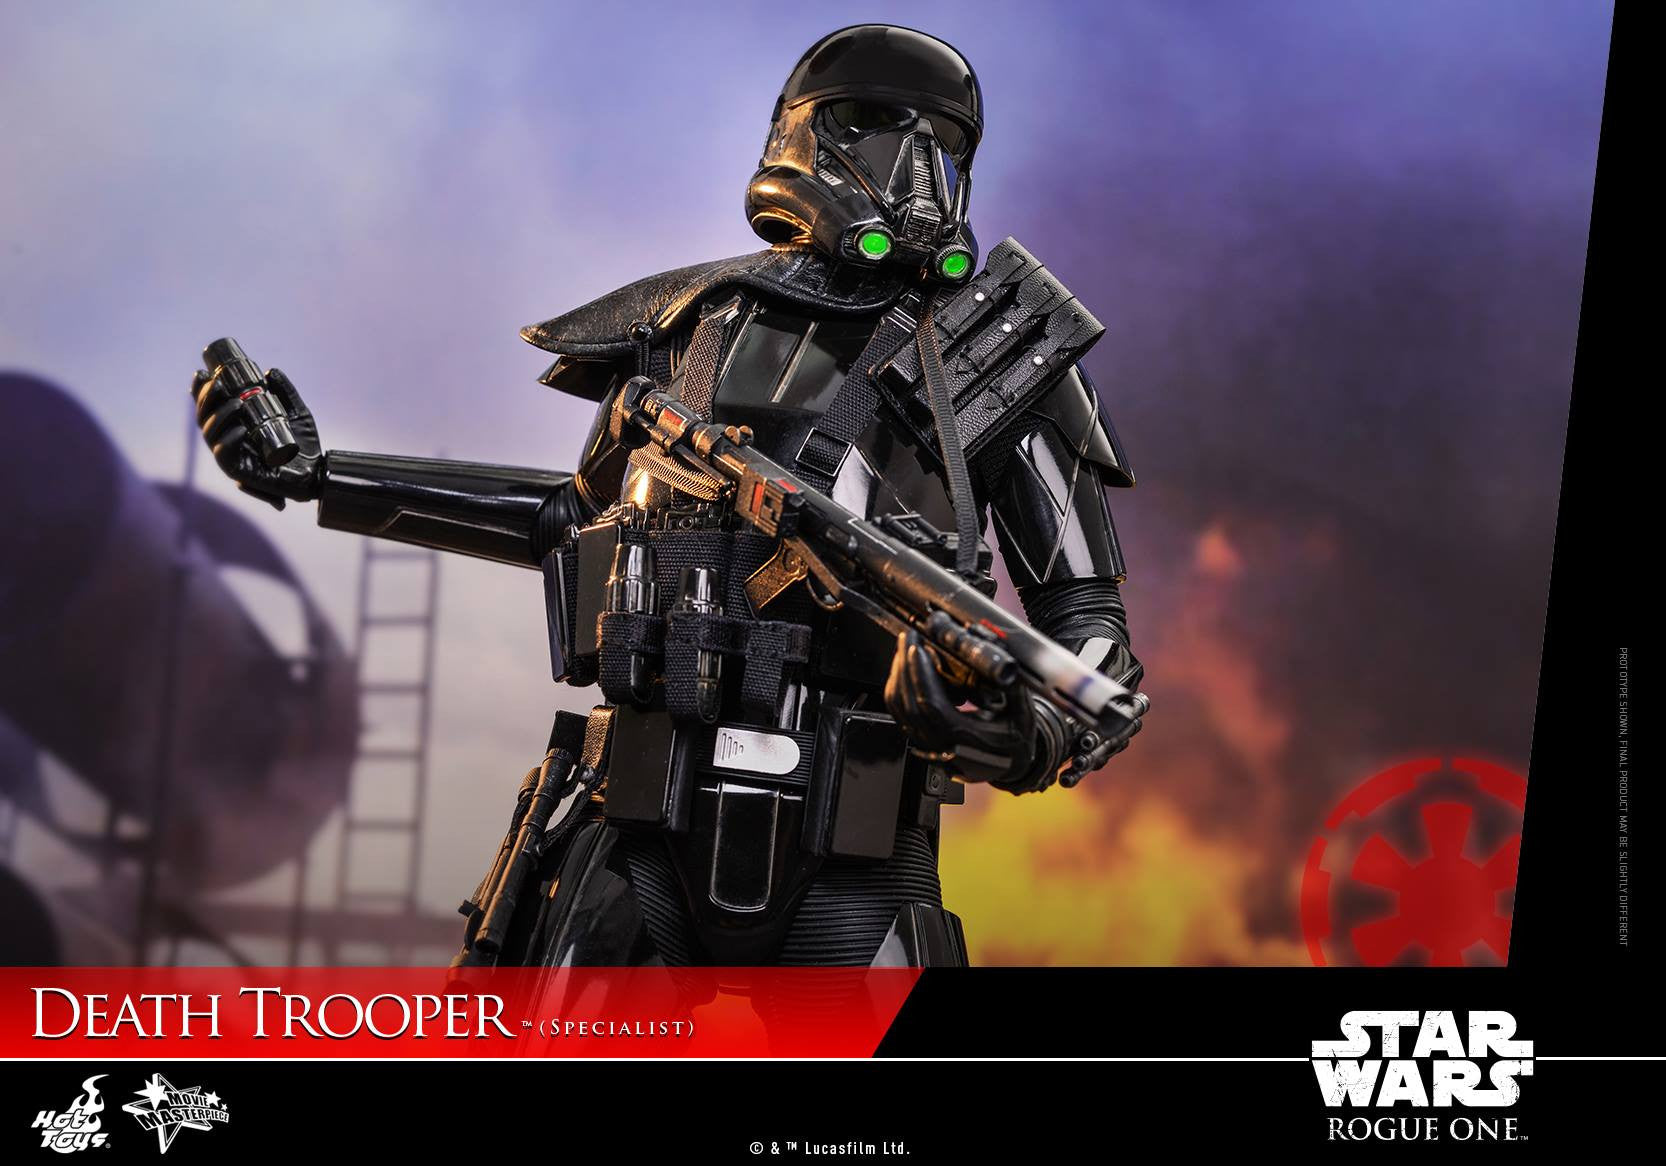 Hot Toys - MMS385 - Rogue One: A Star Wars Story - Death Trooper (Specialist) - Marvelous Toys - 19